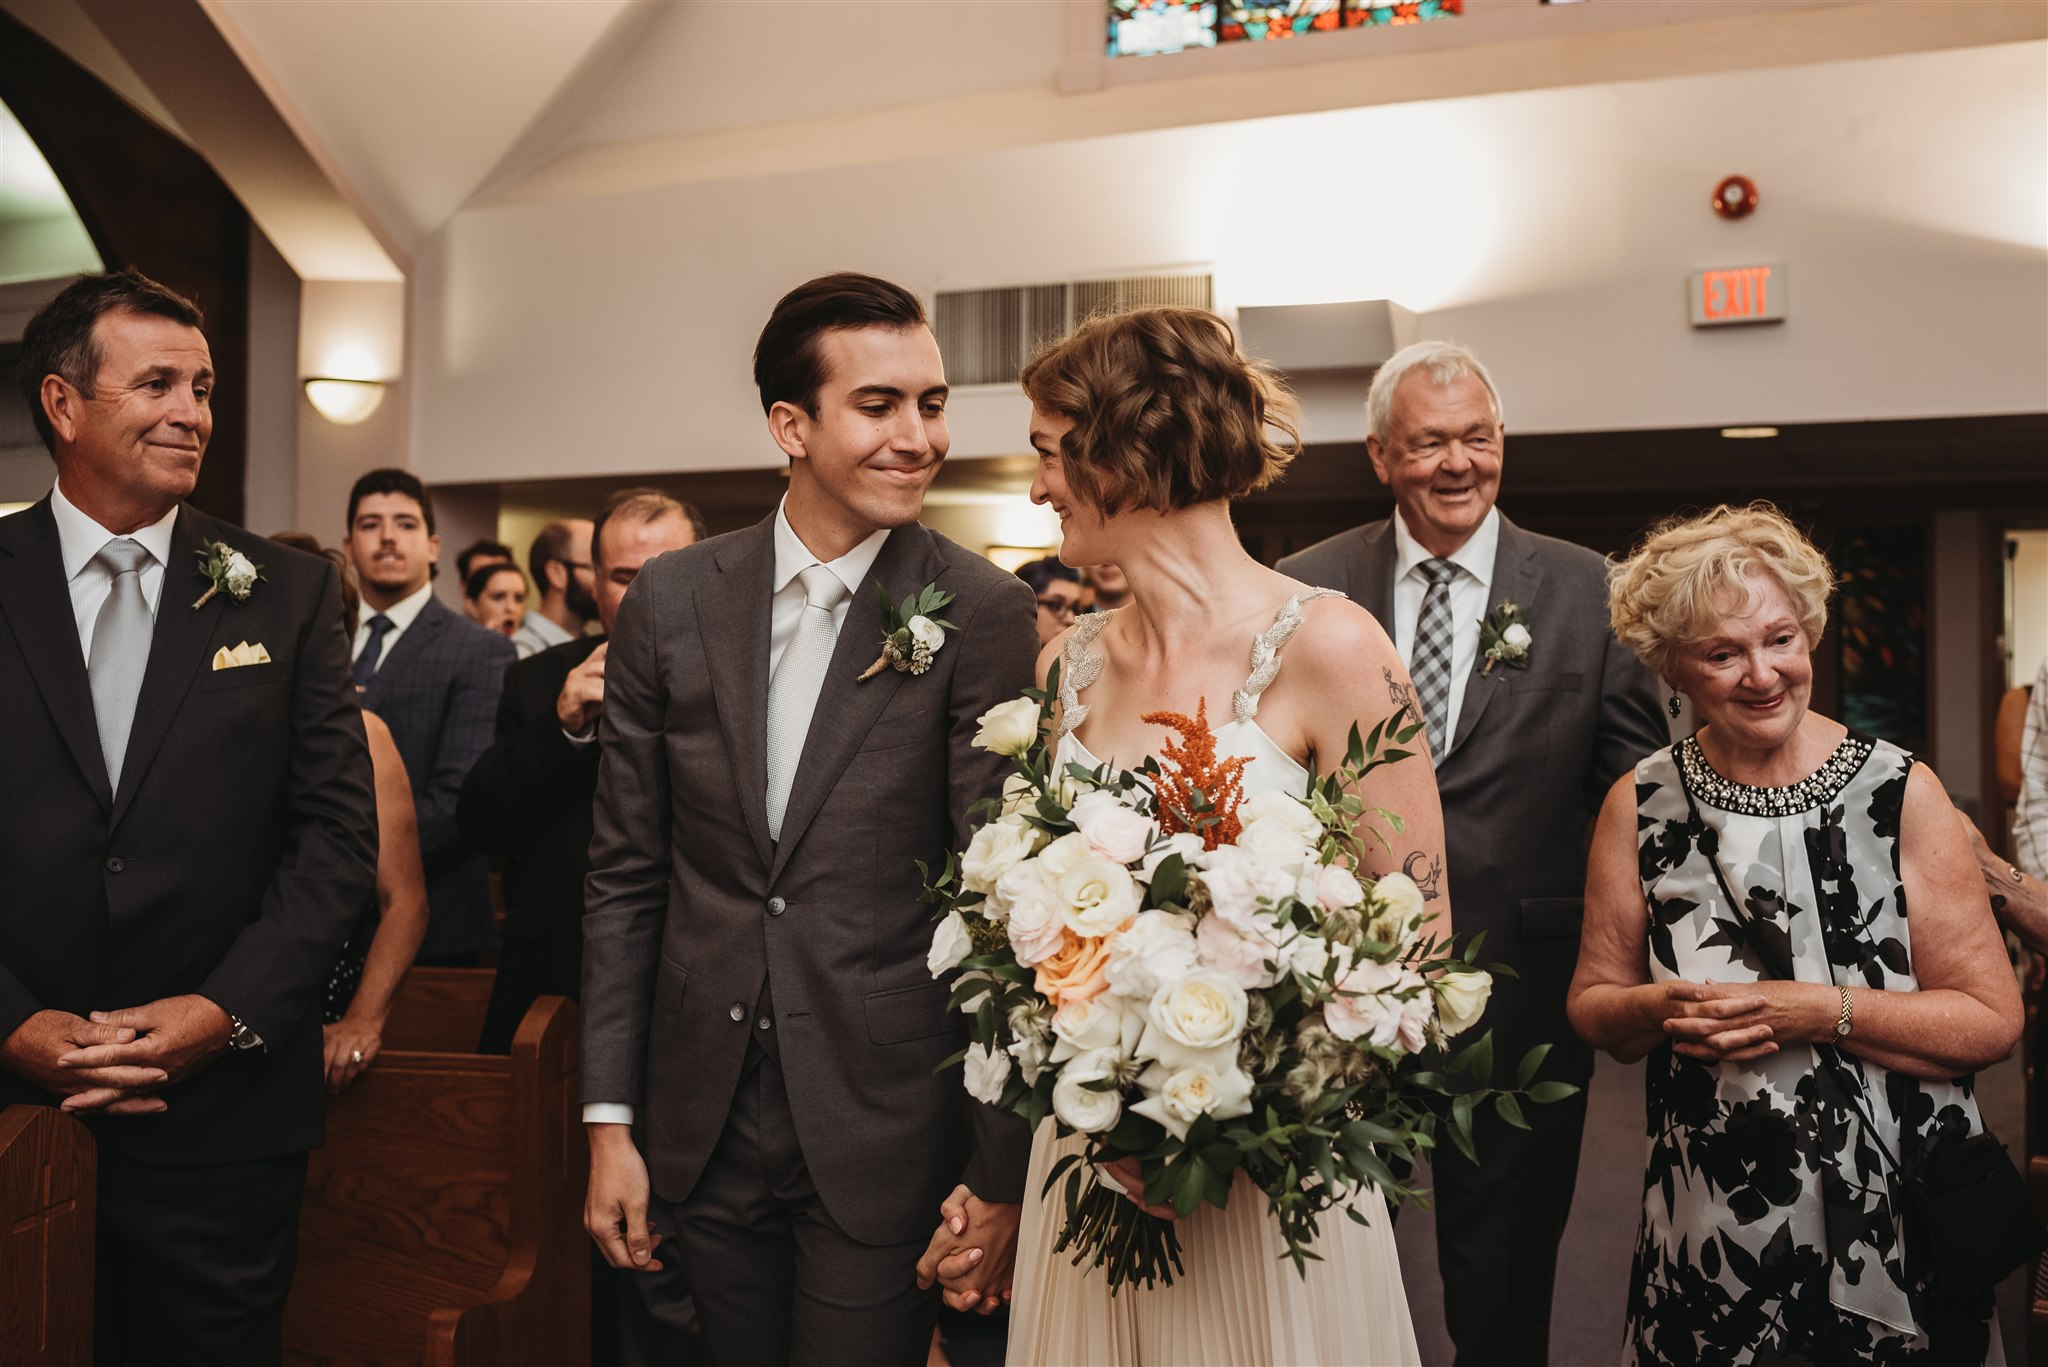 our lady of czestochowa polish catholic church wedding ceremony